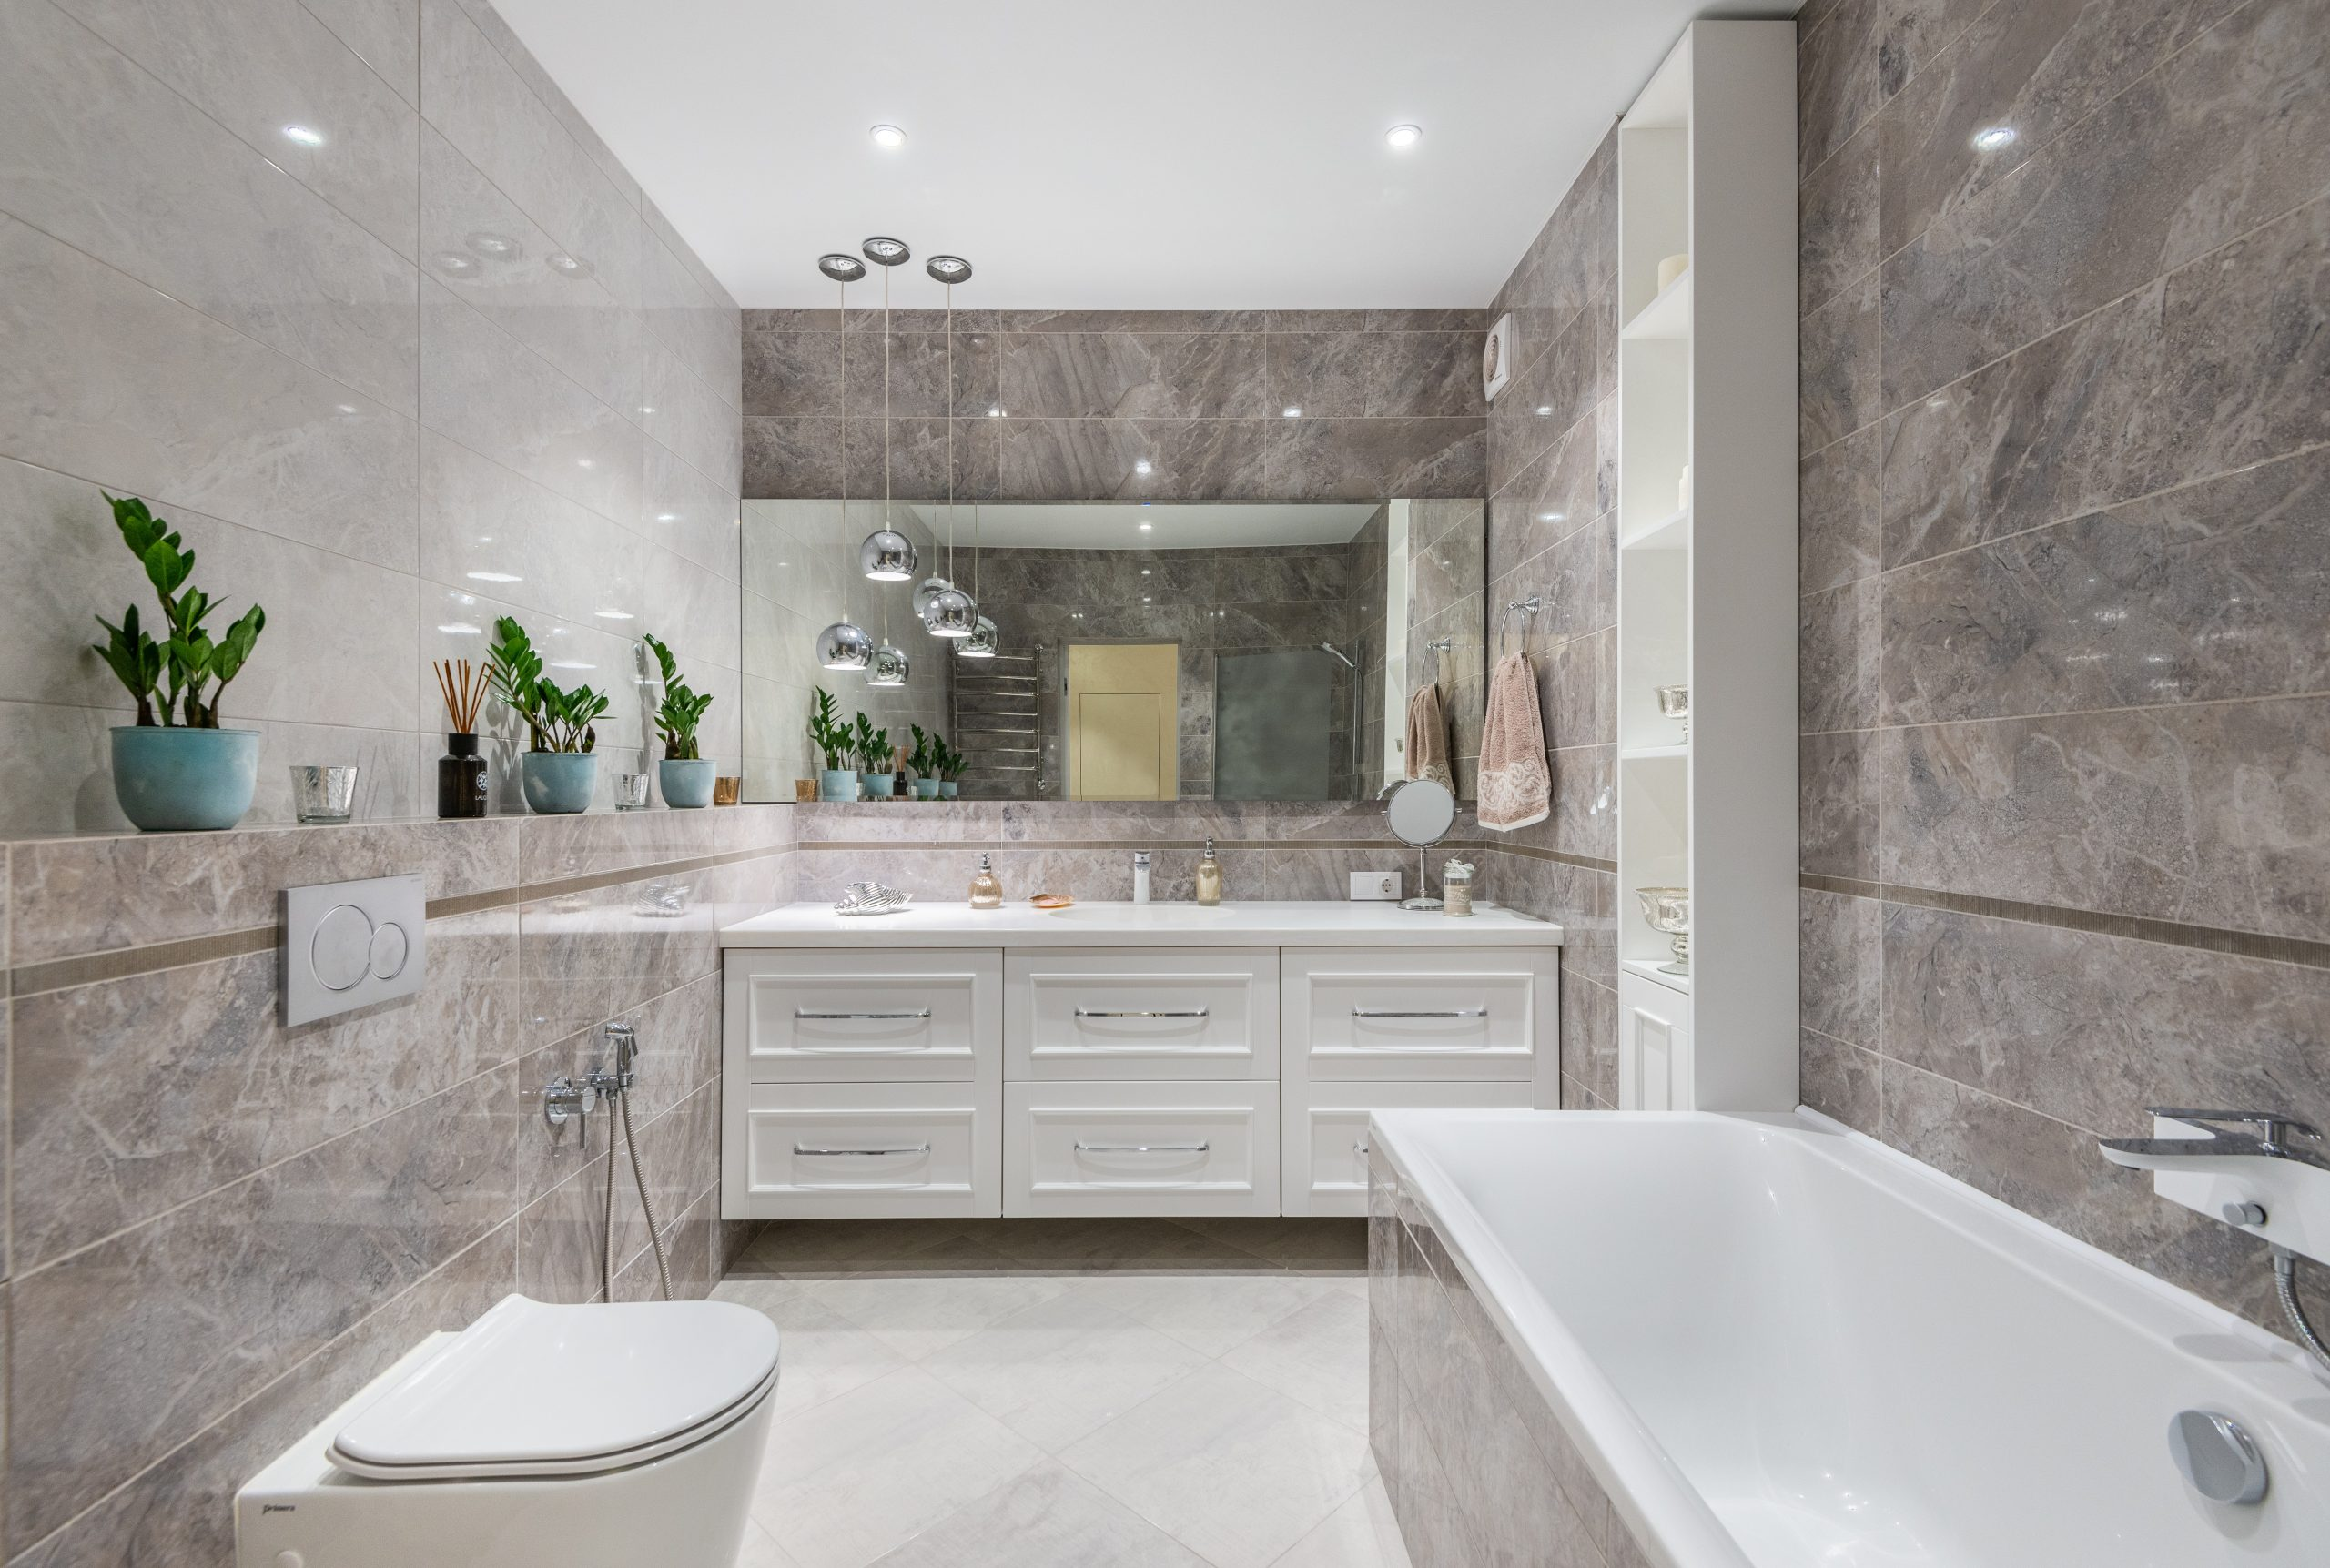 large white bathroom with a tub, toilet, and sinks; Thinking About Renovating Your Home Tackle These Projects First!